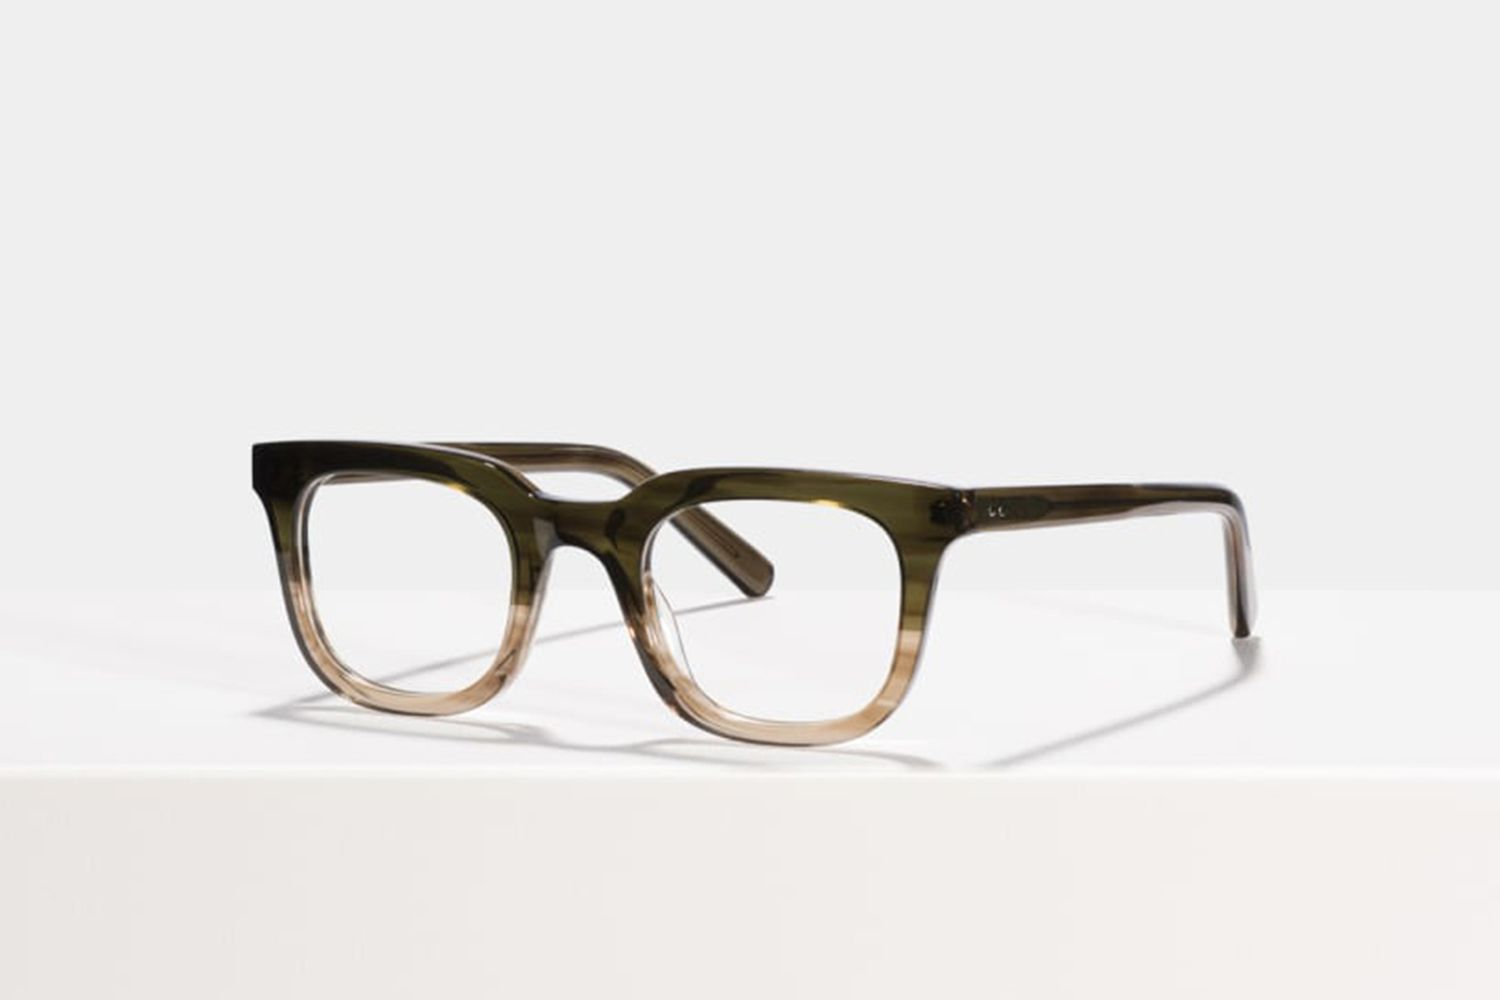 Teller Small Glasses